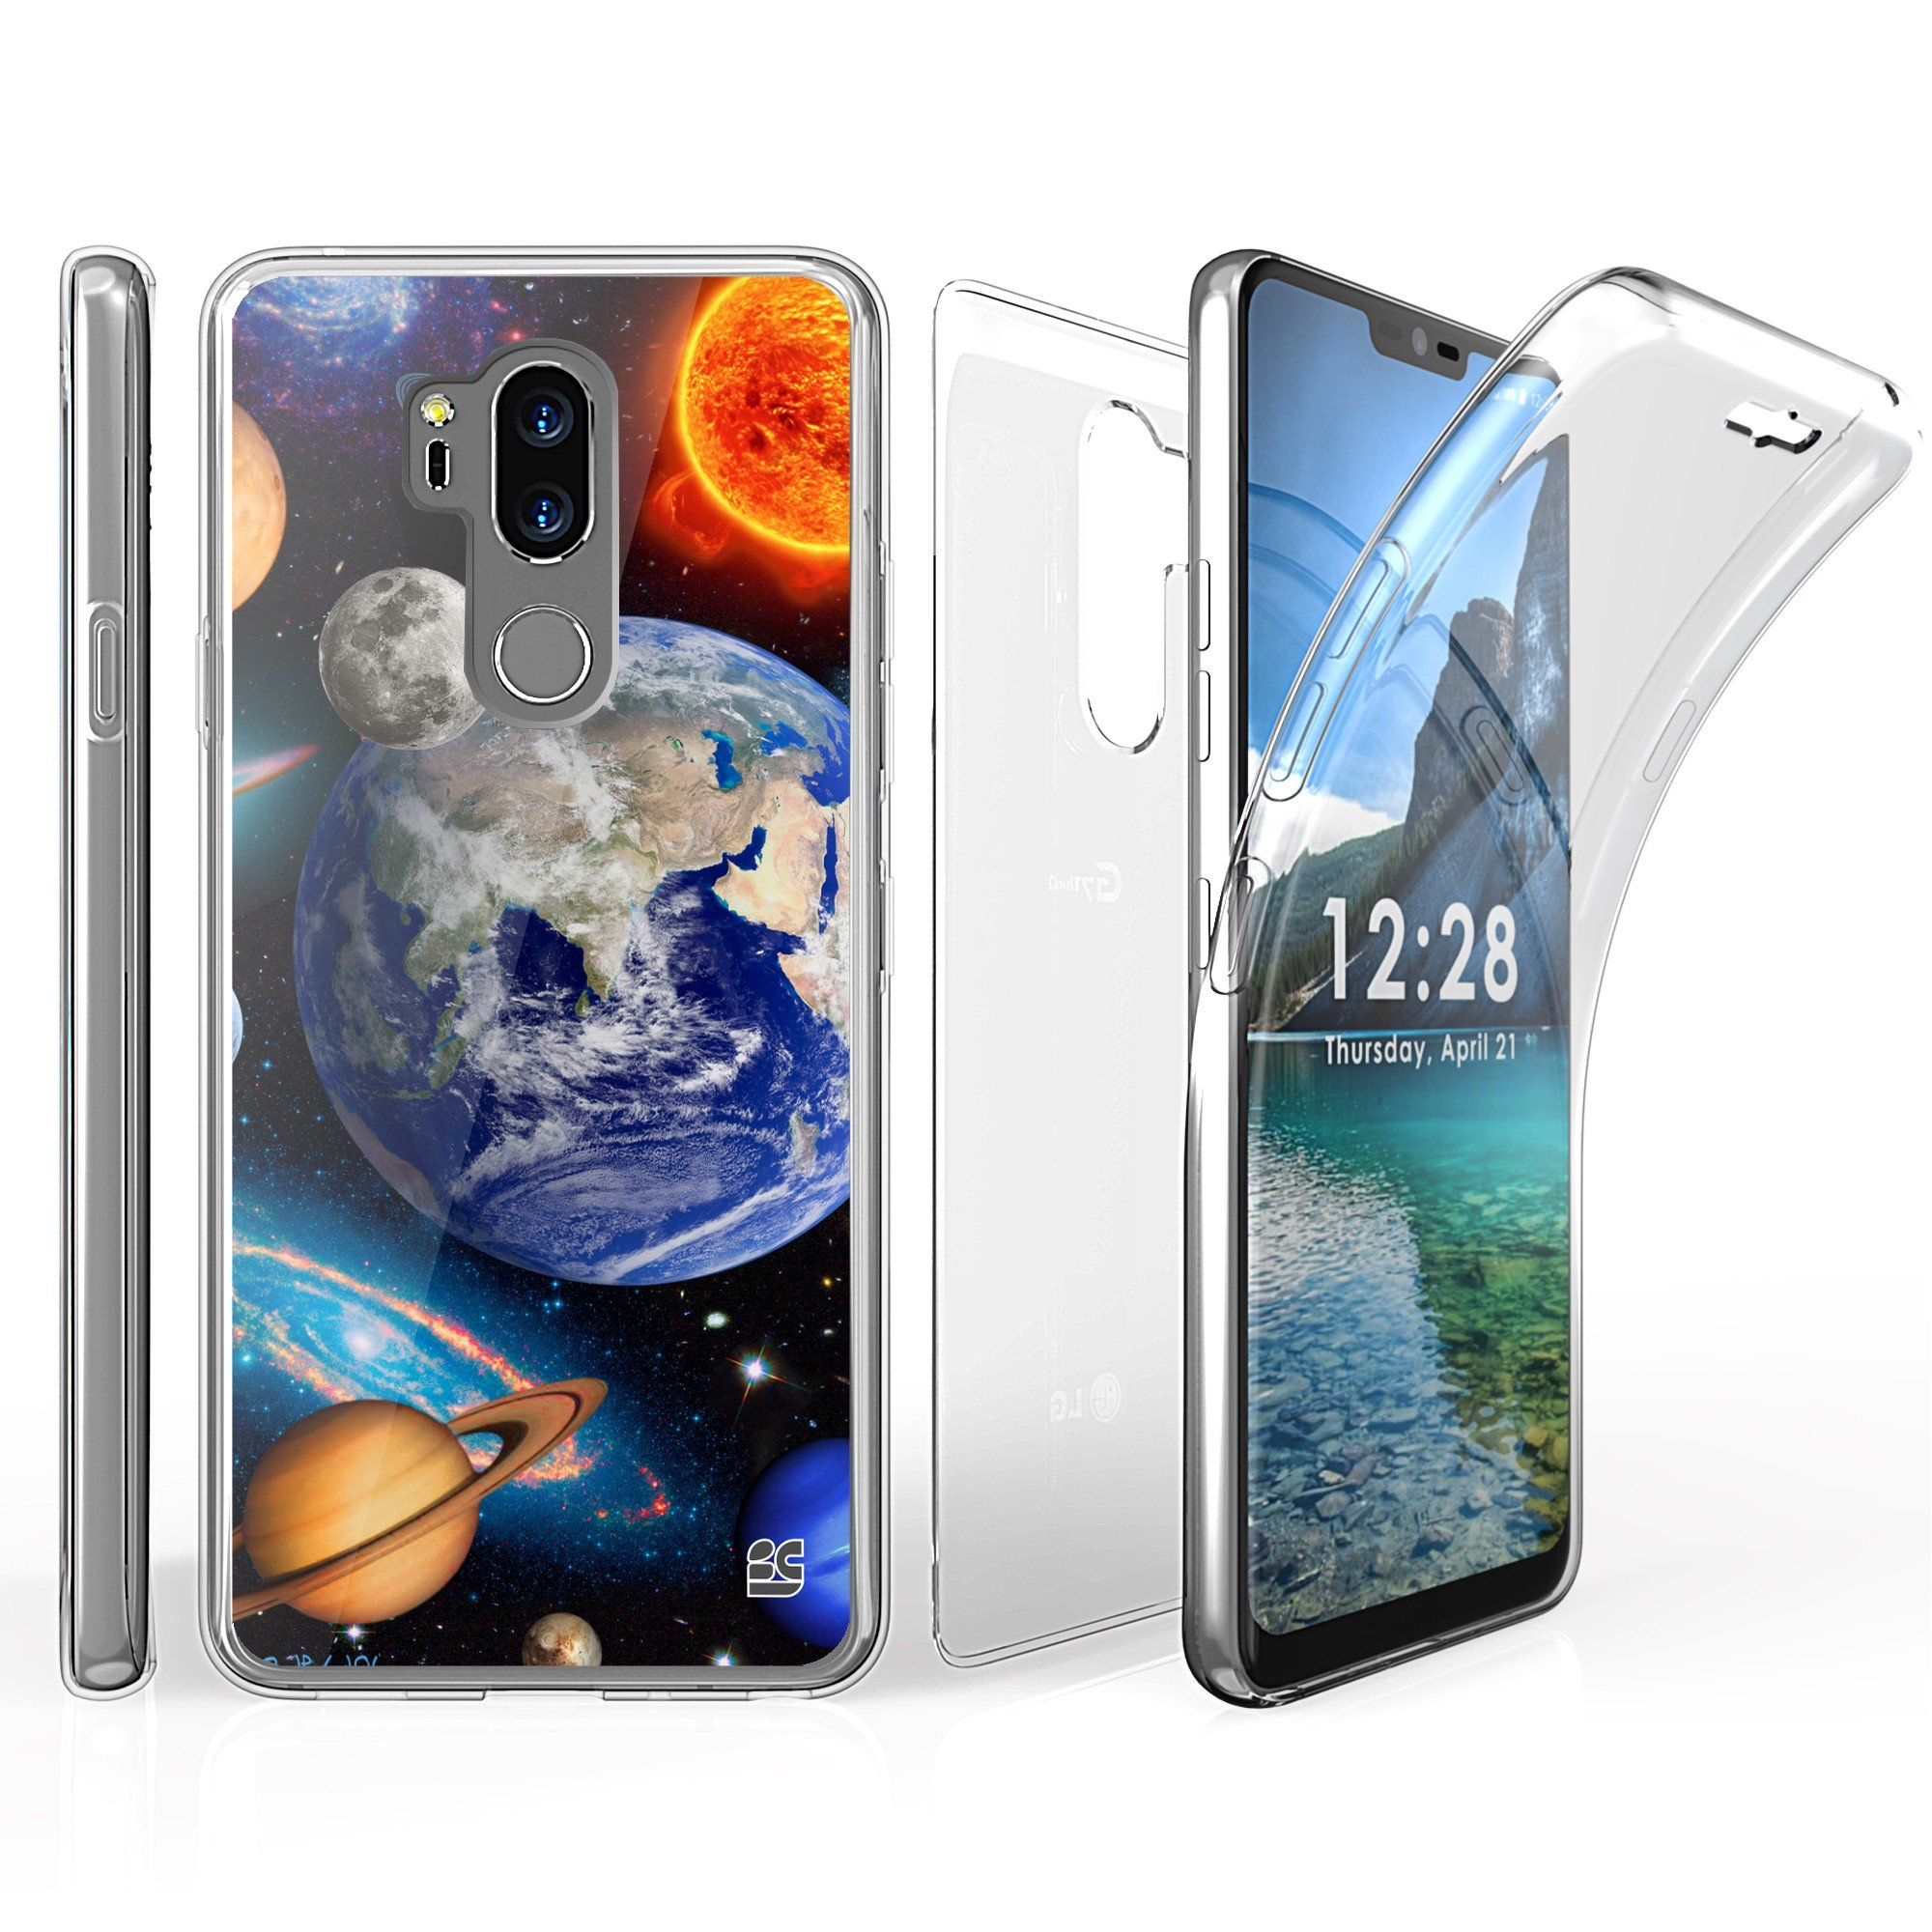 LG G7 ThinQ Case, BeyondCell TriMax 360 Clear Full Body Built in Screen Protector For LG G7 (2018 Released) - Solar Planet Galaxy